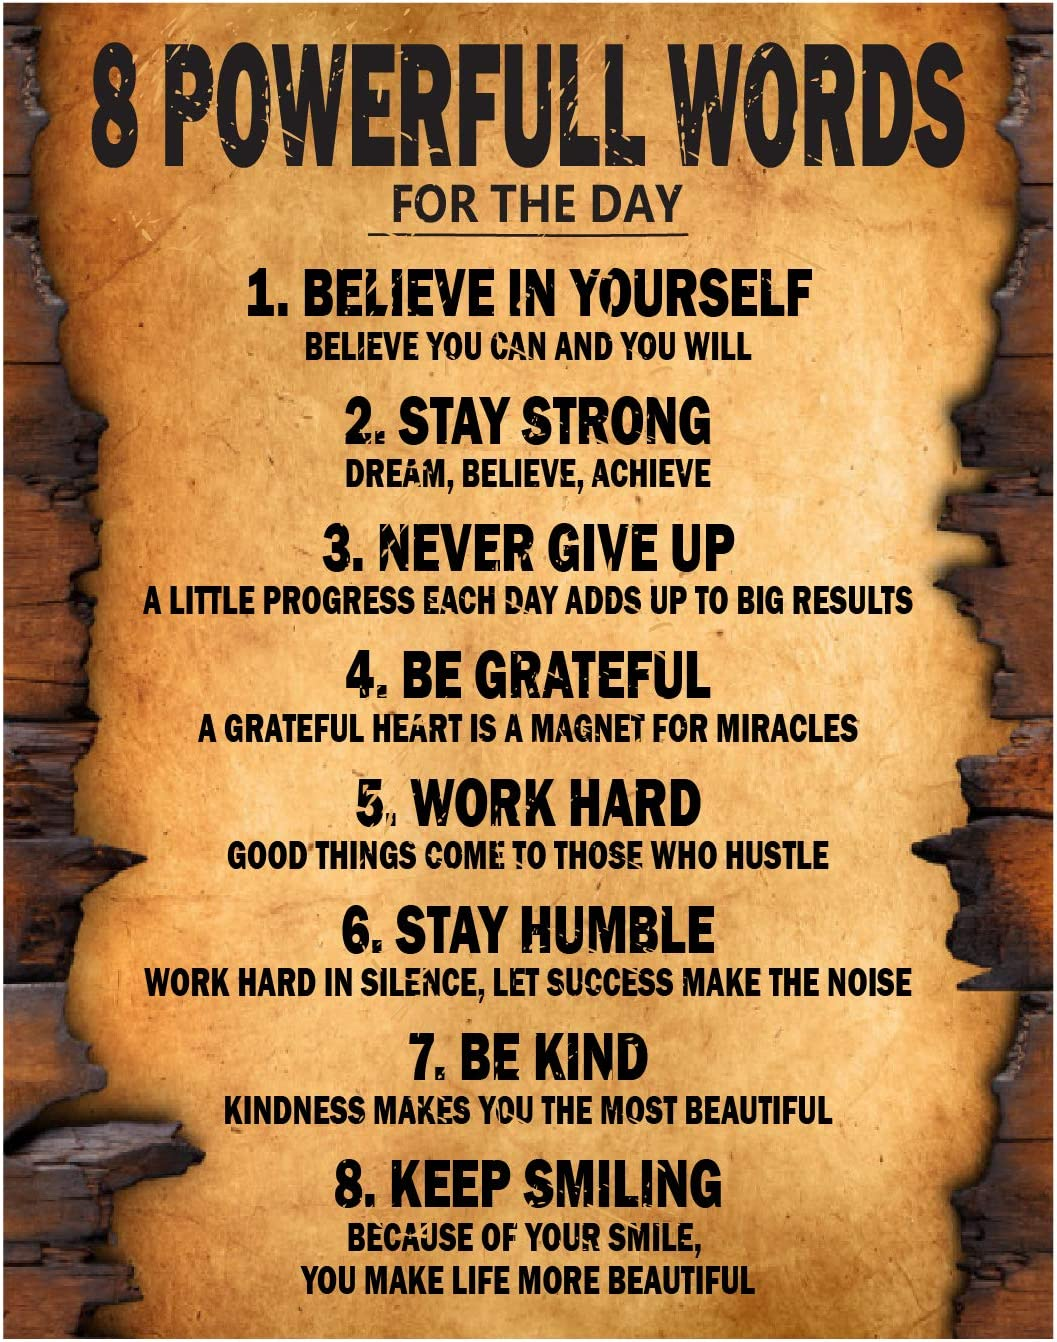 8 Powerful Words for the day Motivational Poster Thick Cardstock Paper, Ready to be Framed 11